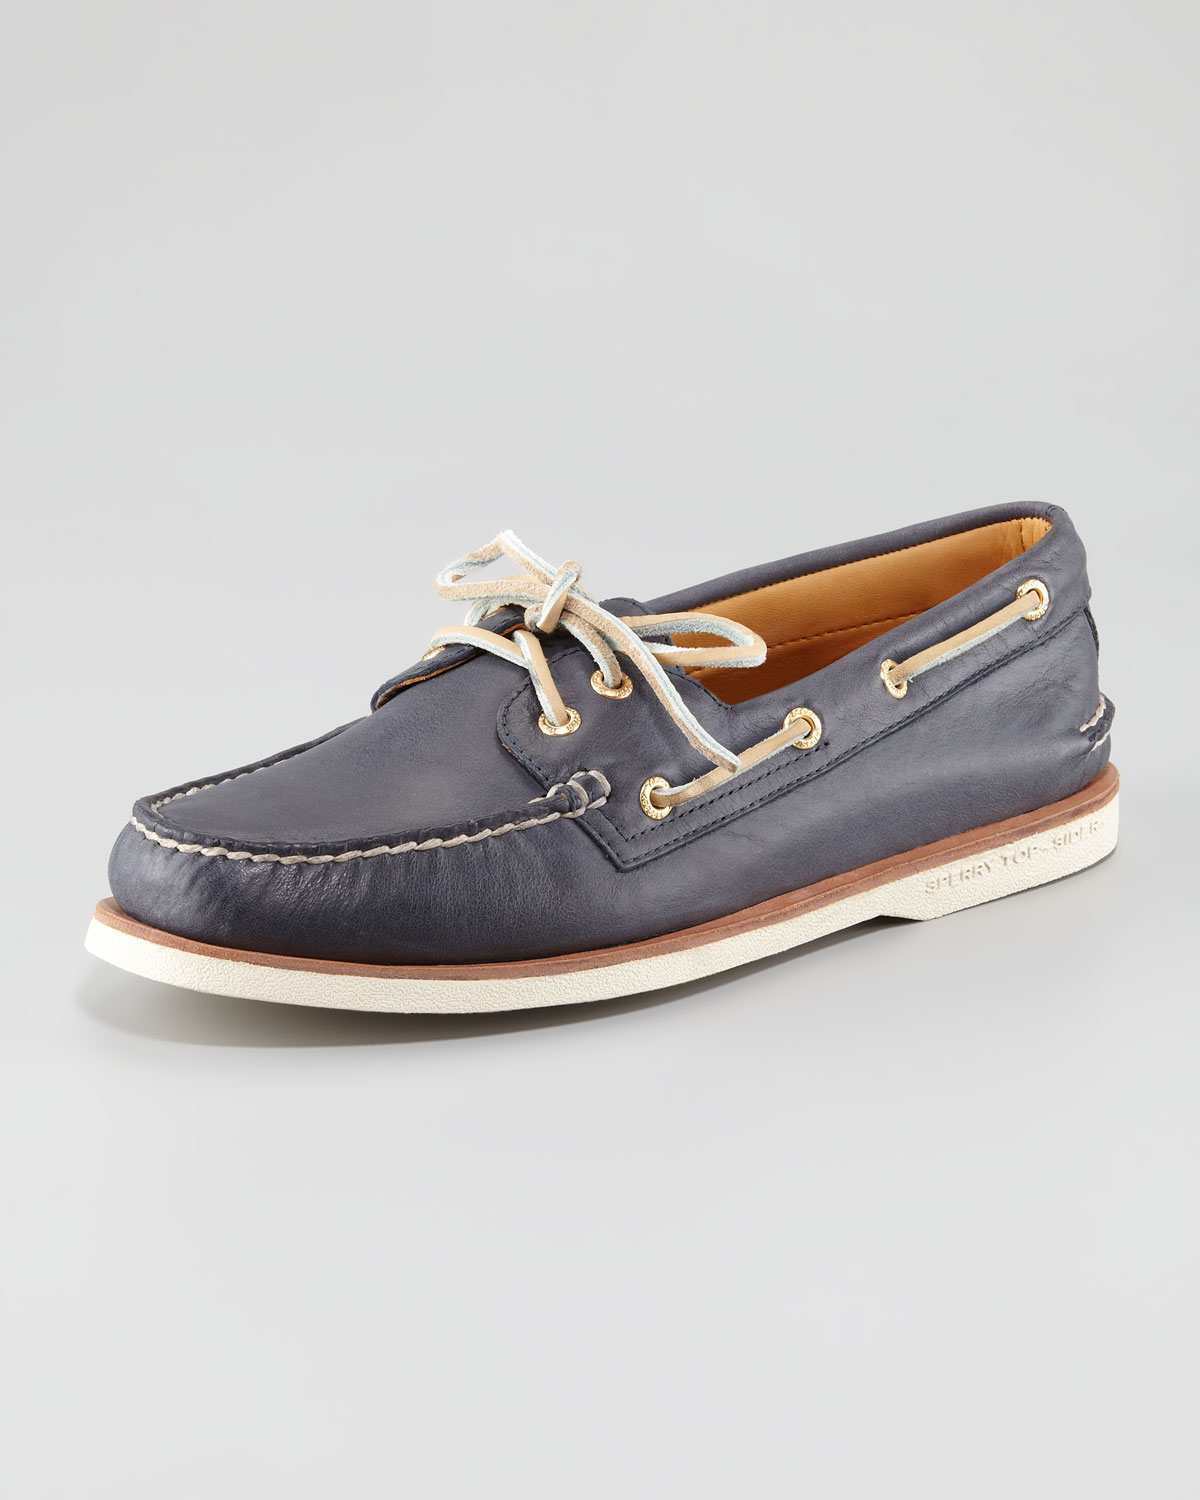 6a30339708 Lyst - Sperry Top-Sider Gold Cup Authentic Original Boat Shoe in ...